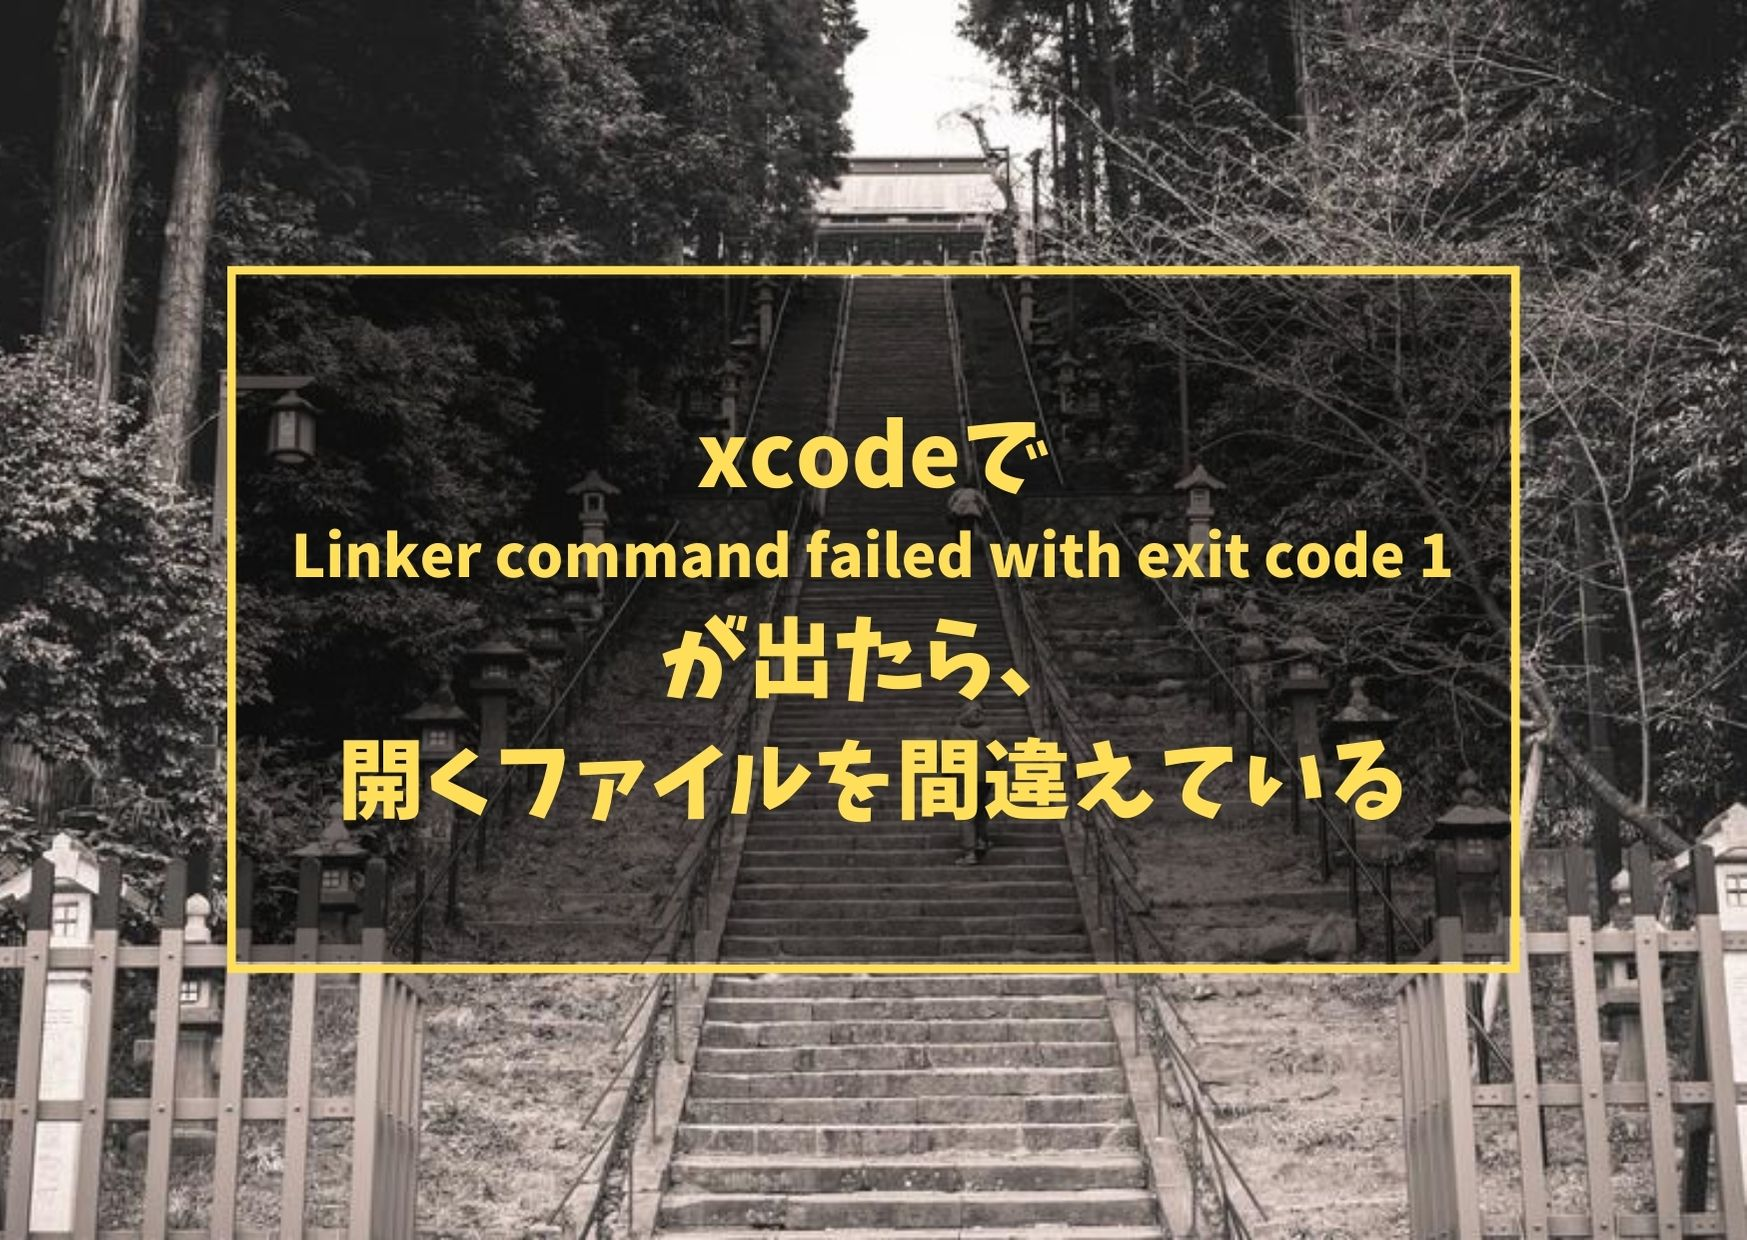 xcodeでLinker command failed with exit code 1が出たら、開くファイルを間違えている